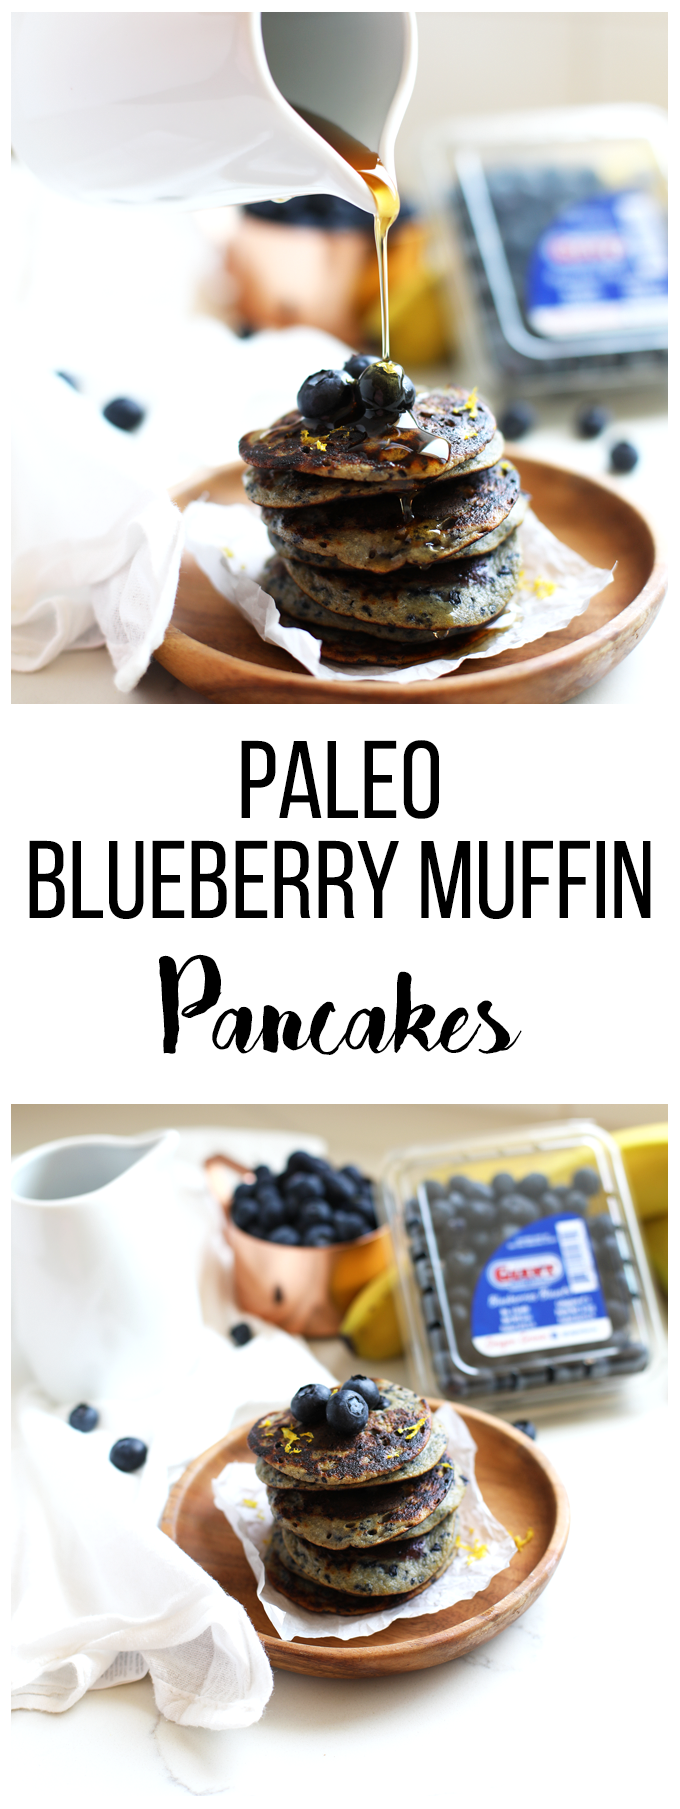 These Paleo Blueberry Muffin Pancakes only have a few ingredients and are a great grain free breakfast option for anyone!